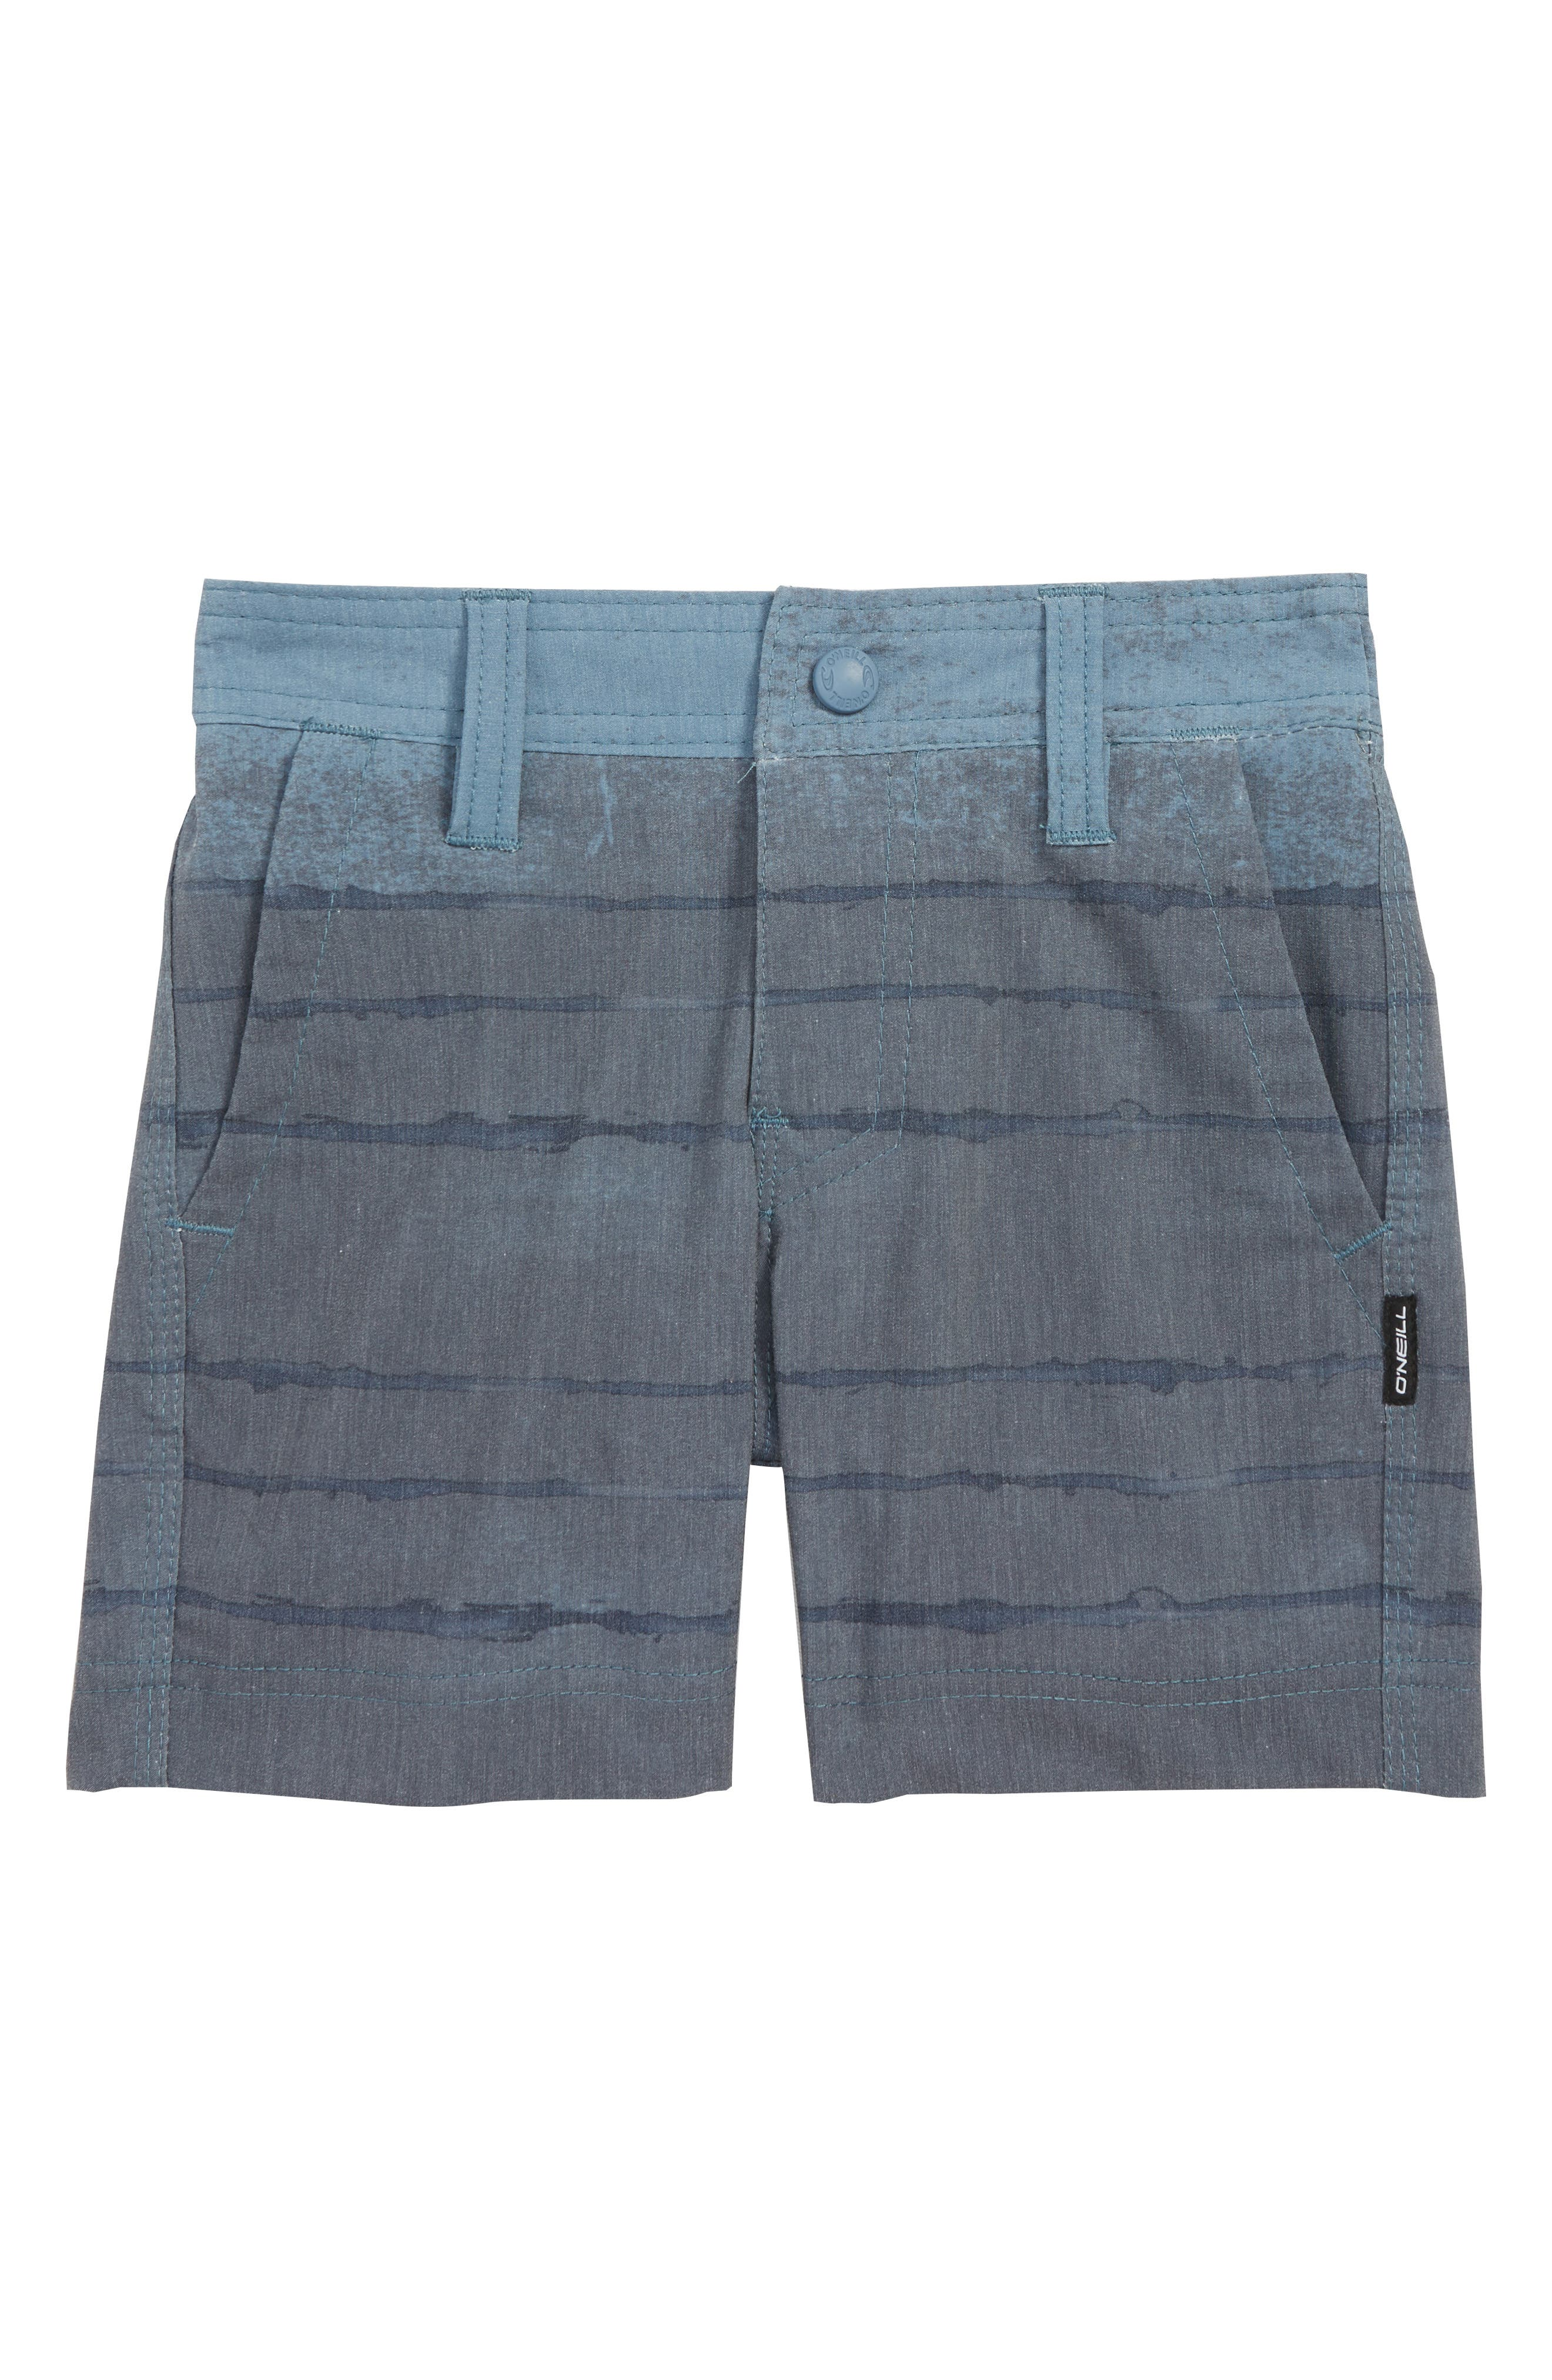 Tye Striper Hybrid Shorts,                         Main,                         color, DUST BLUE